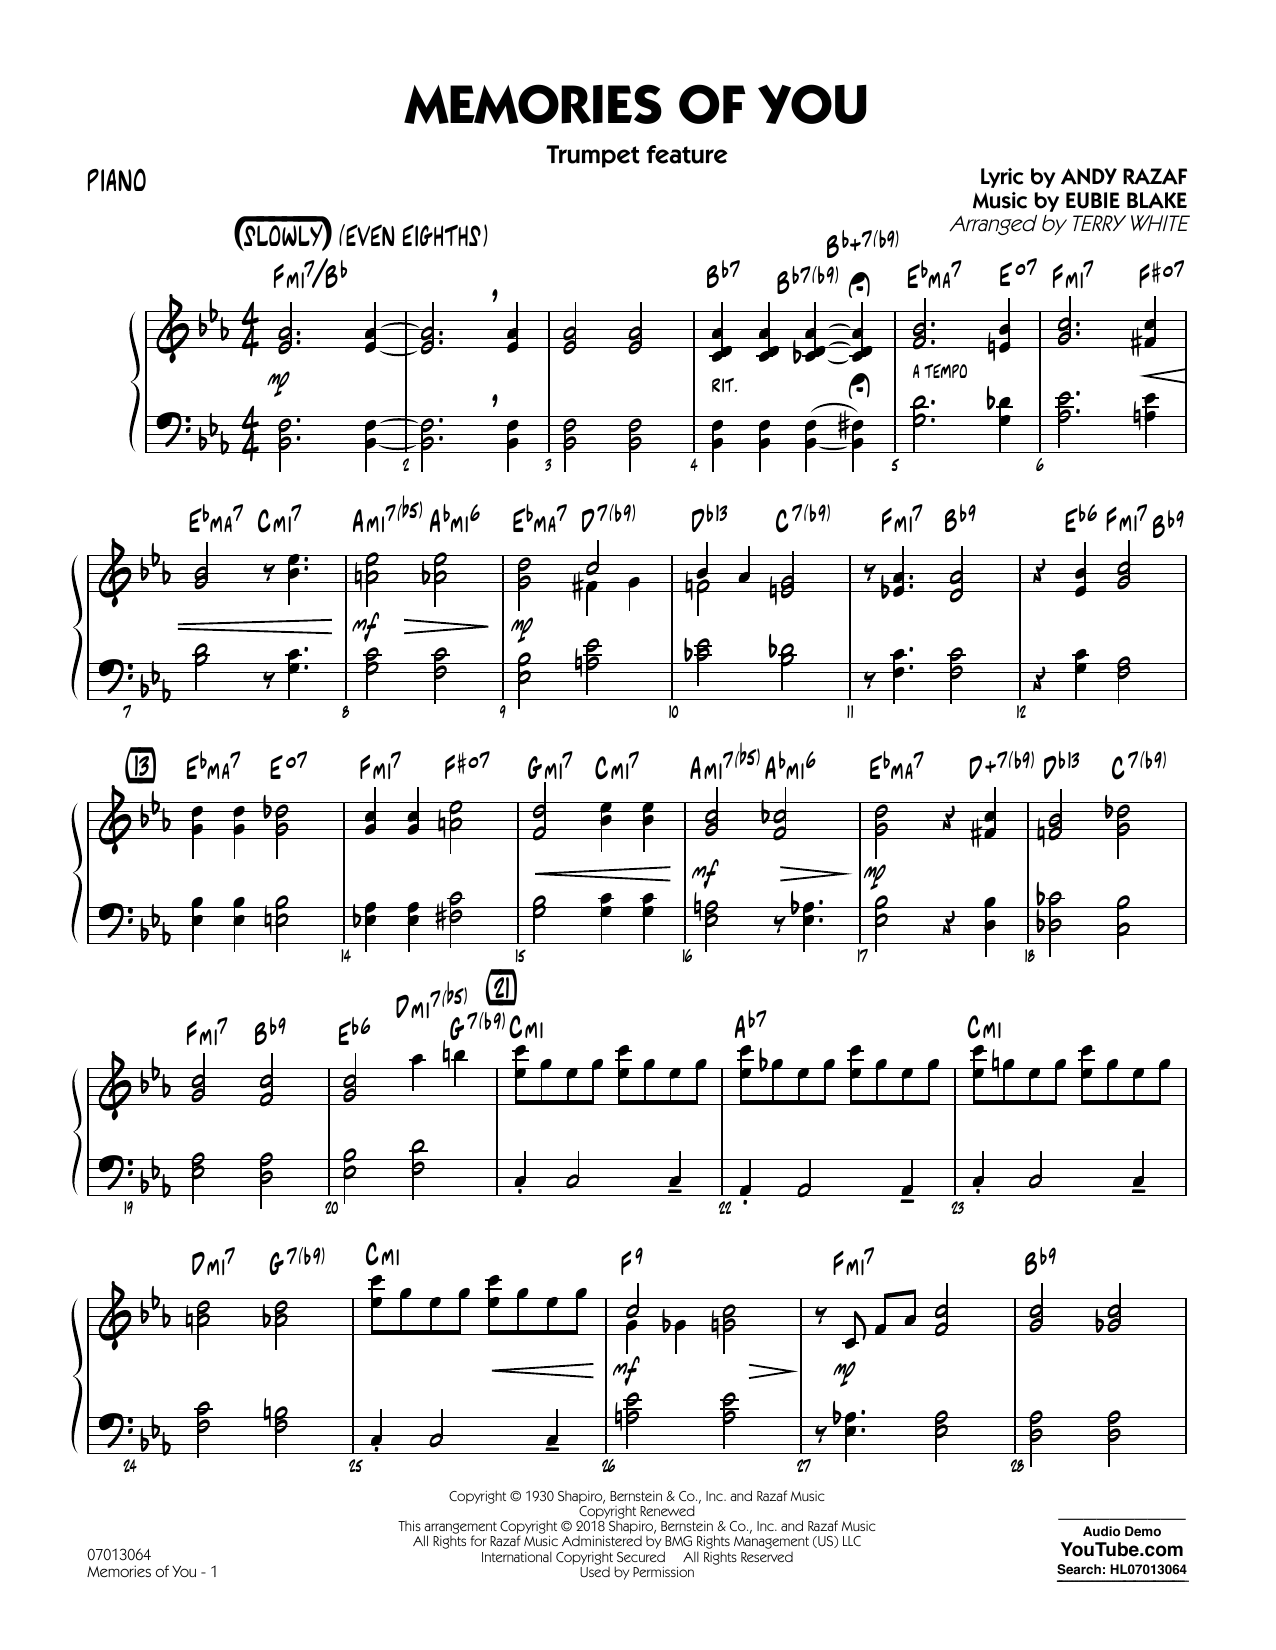 Terry White Memories of You (Trumpet Feature) - Piano sheet music notes and chords. Download Printable PDF.